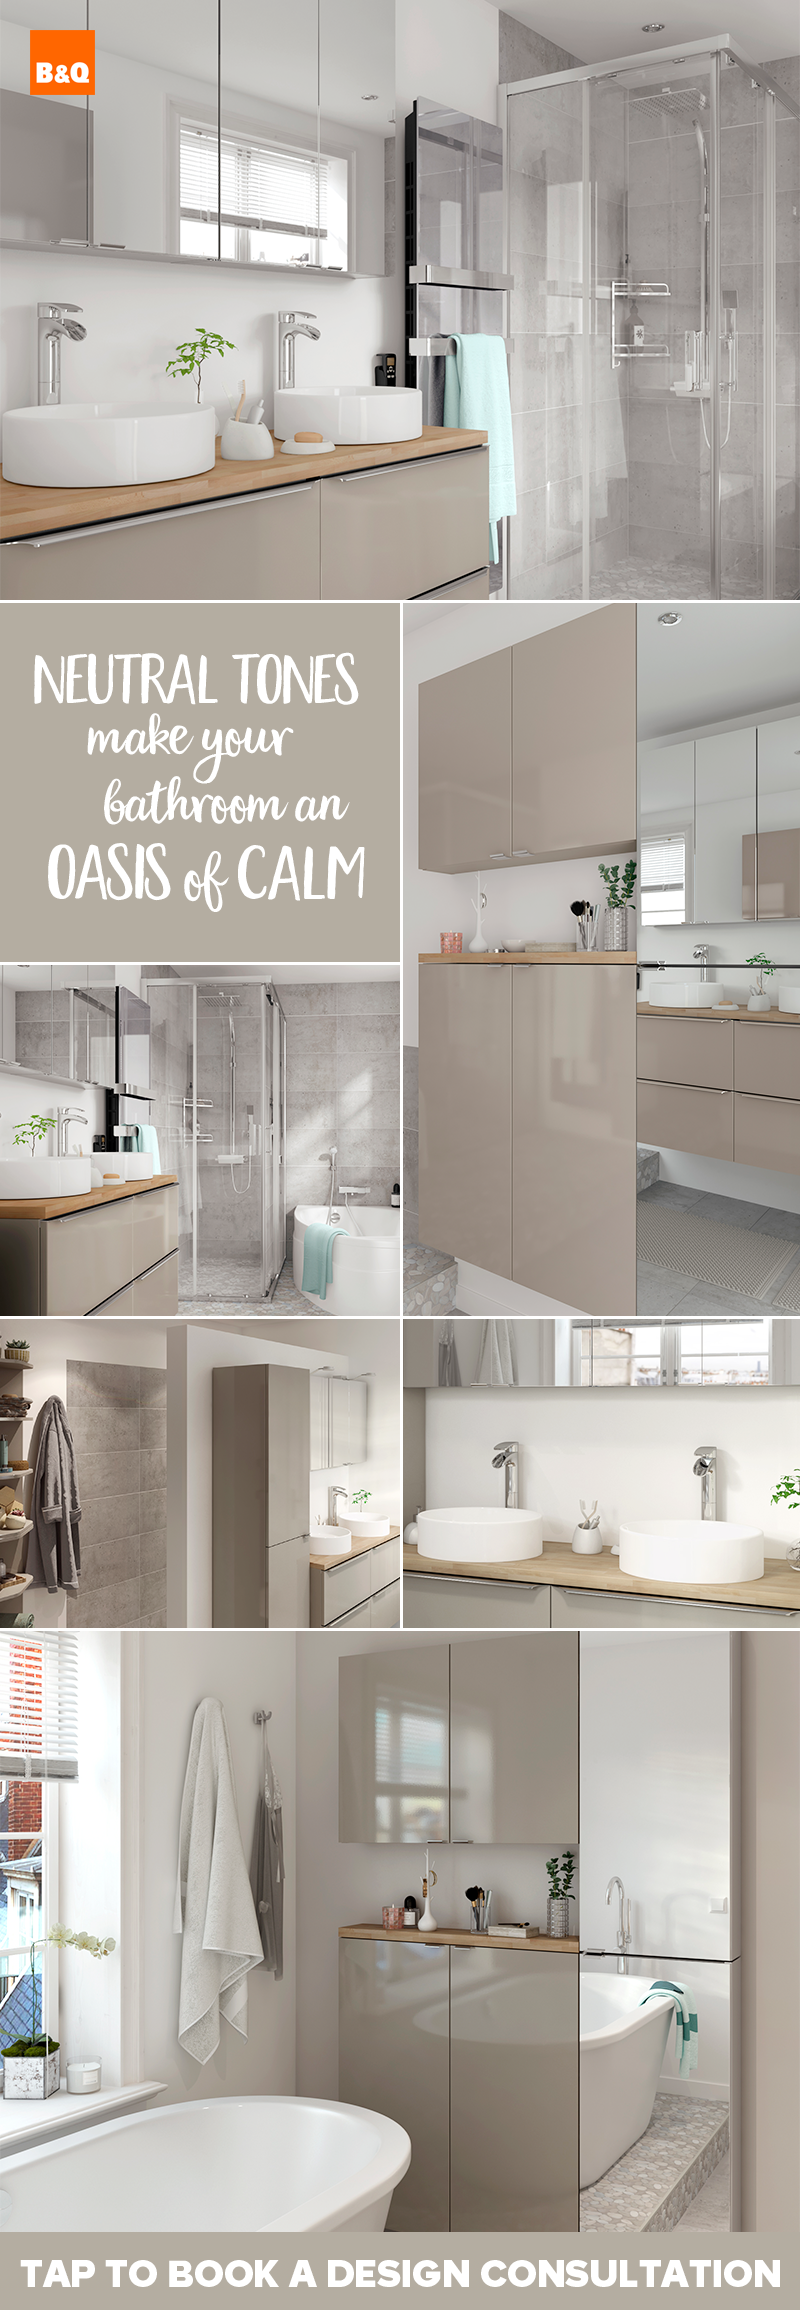 What's Your Favourite Colour Our Bathrooms Come In A Range Of Glamorous B And Q Bathroom Design Inspiration Design